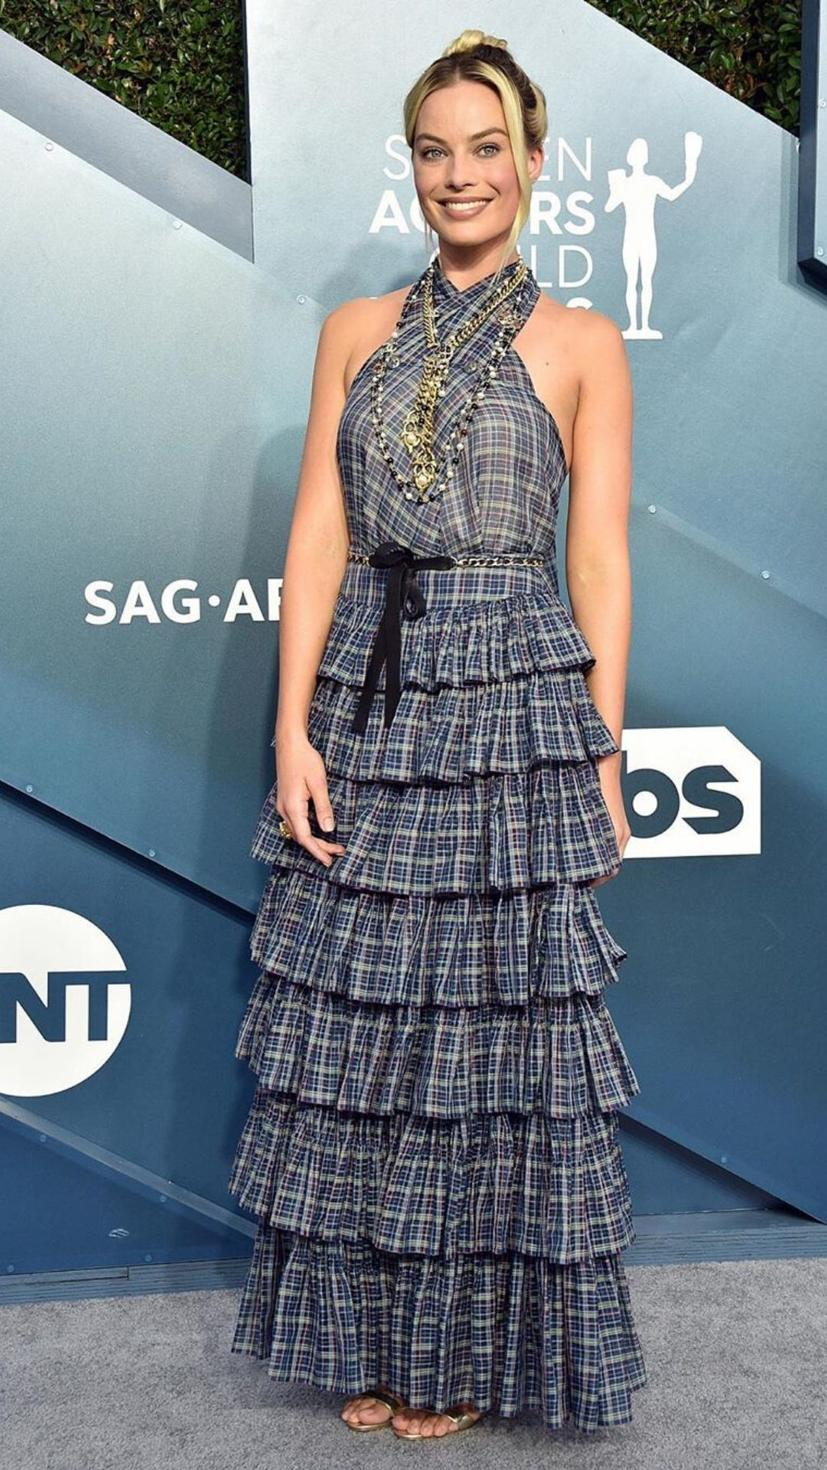 Margot Robbie wears a Chanel gown with Chanel jewellery to match